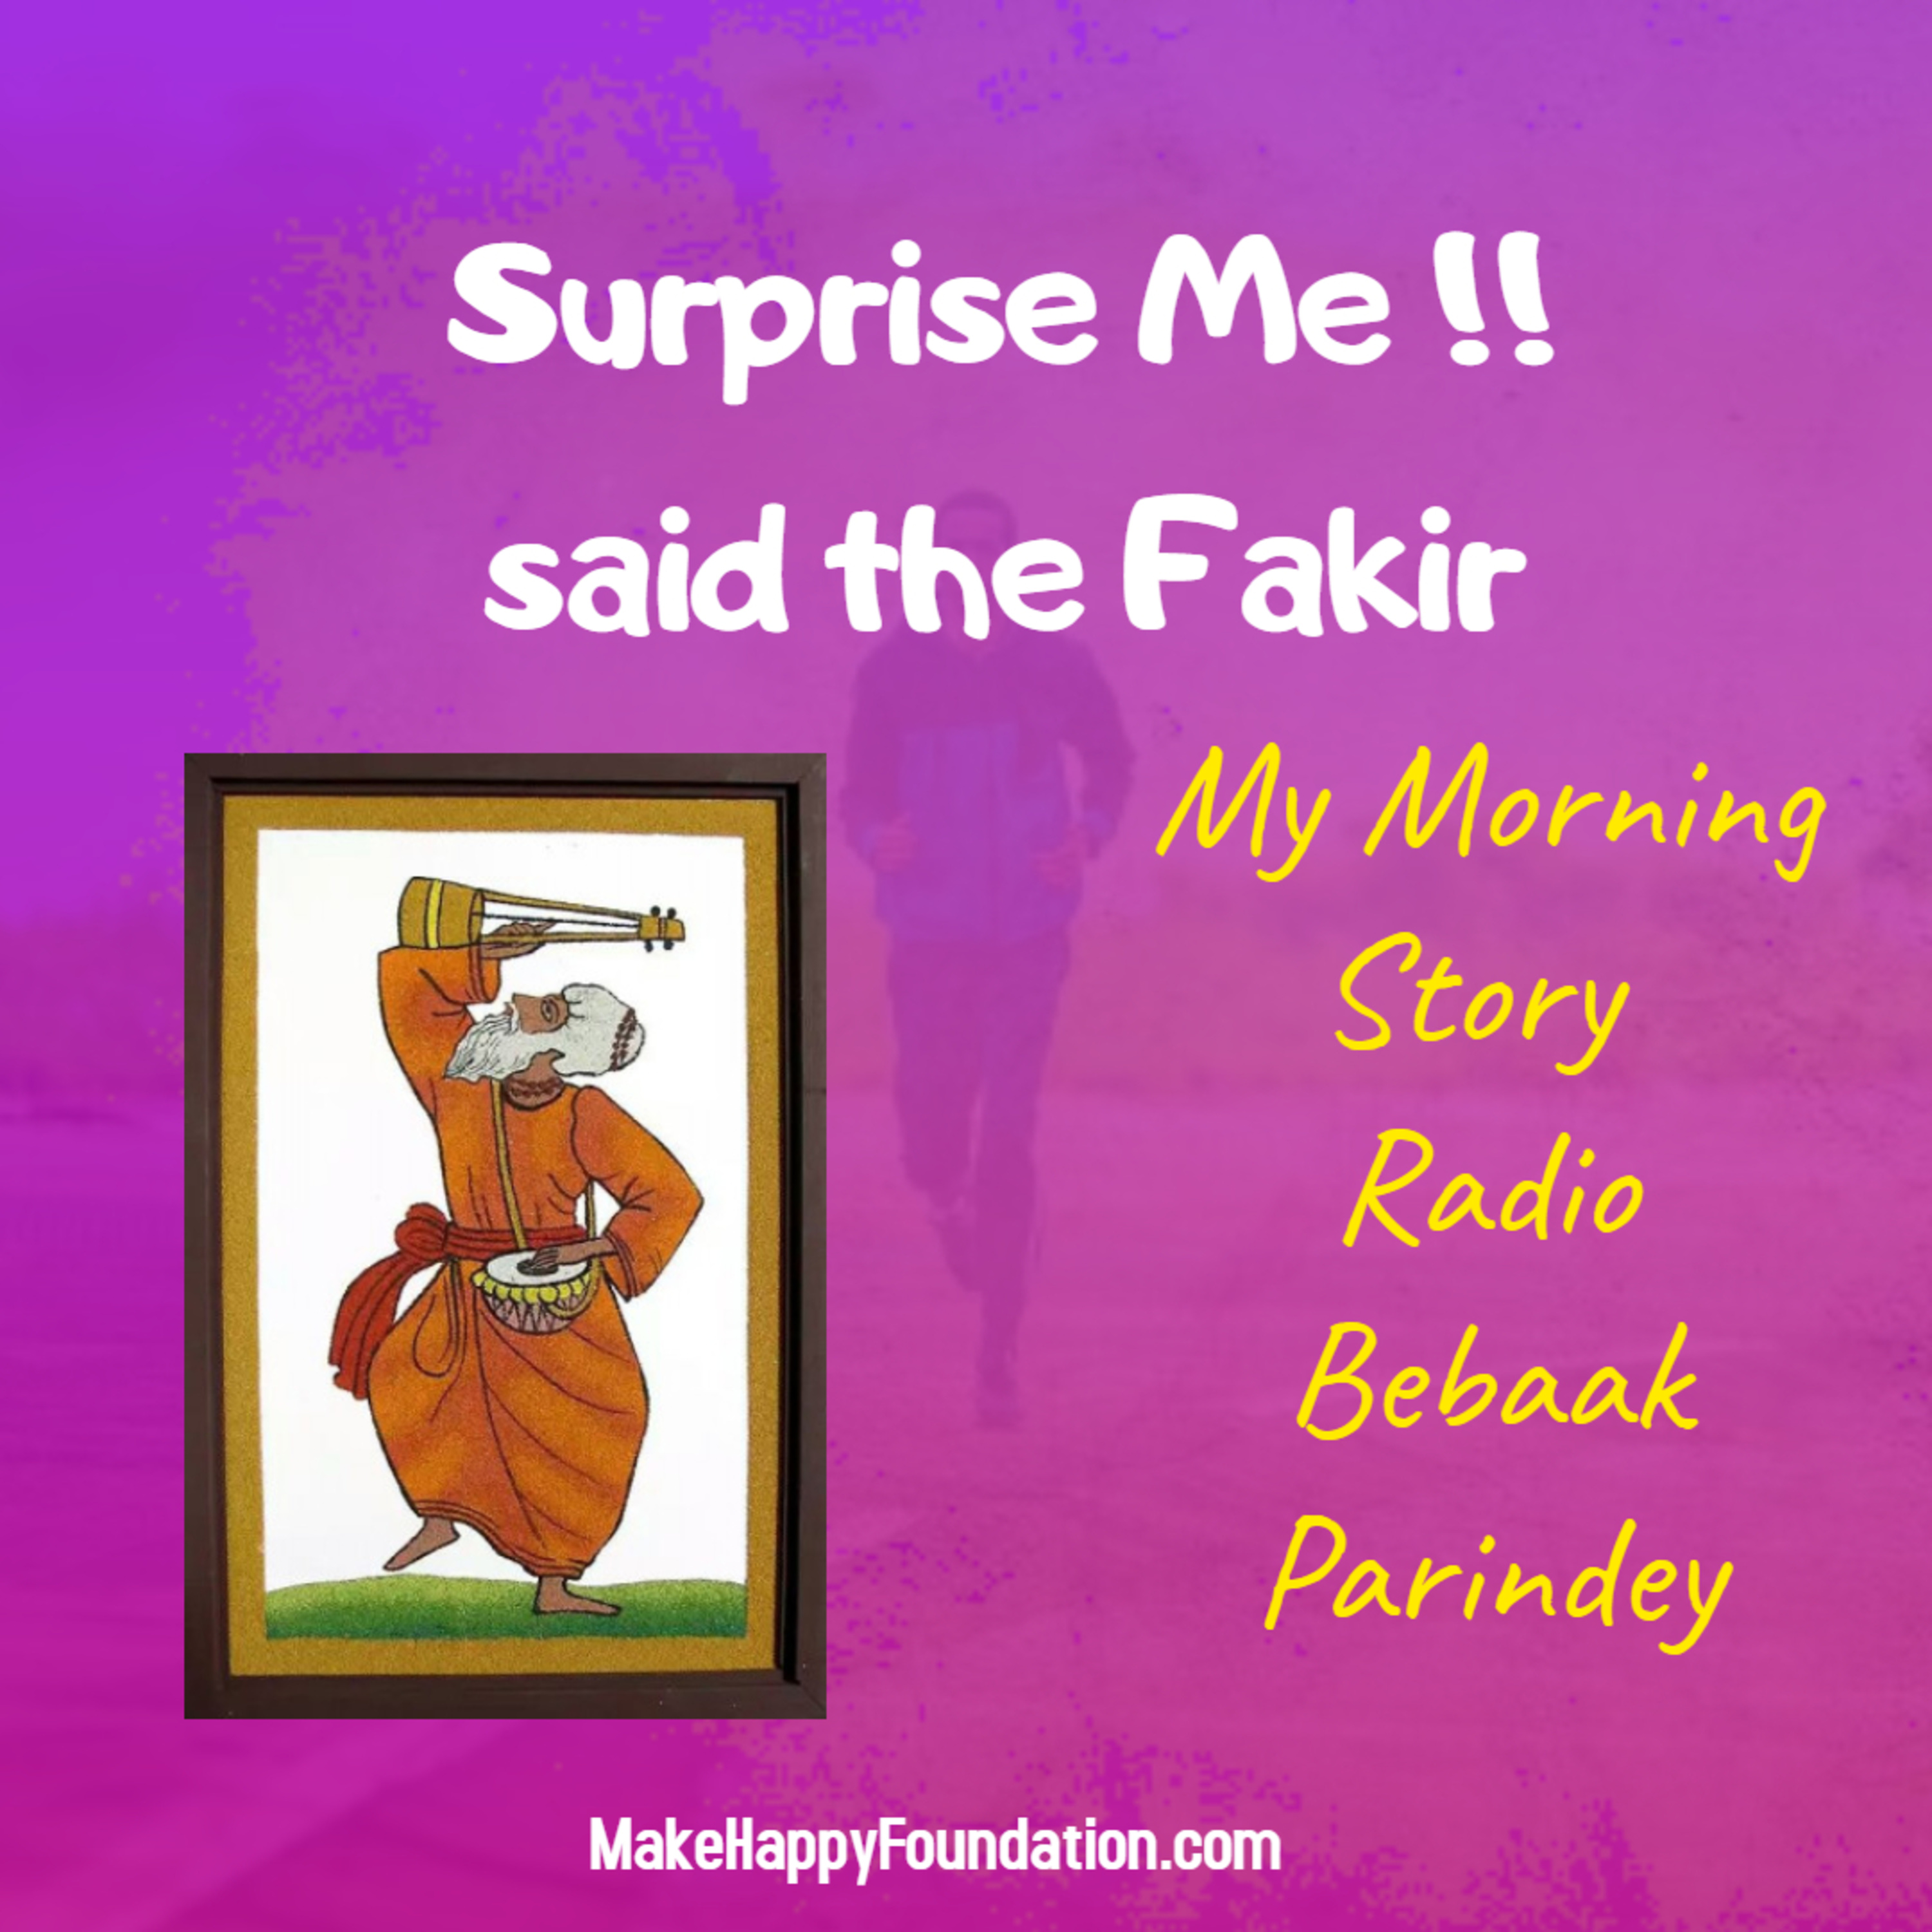 Why did the Fakir wanted to be Surprised? My Morning Story Radio Bebaak Parindey